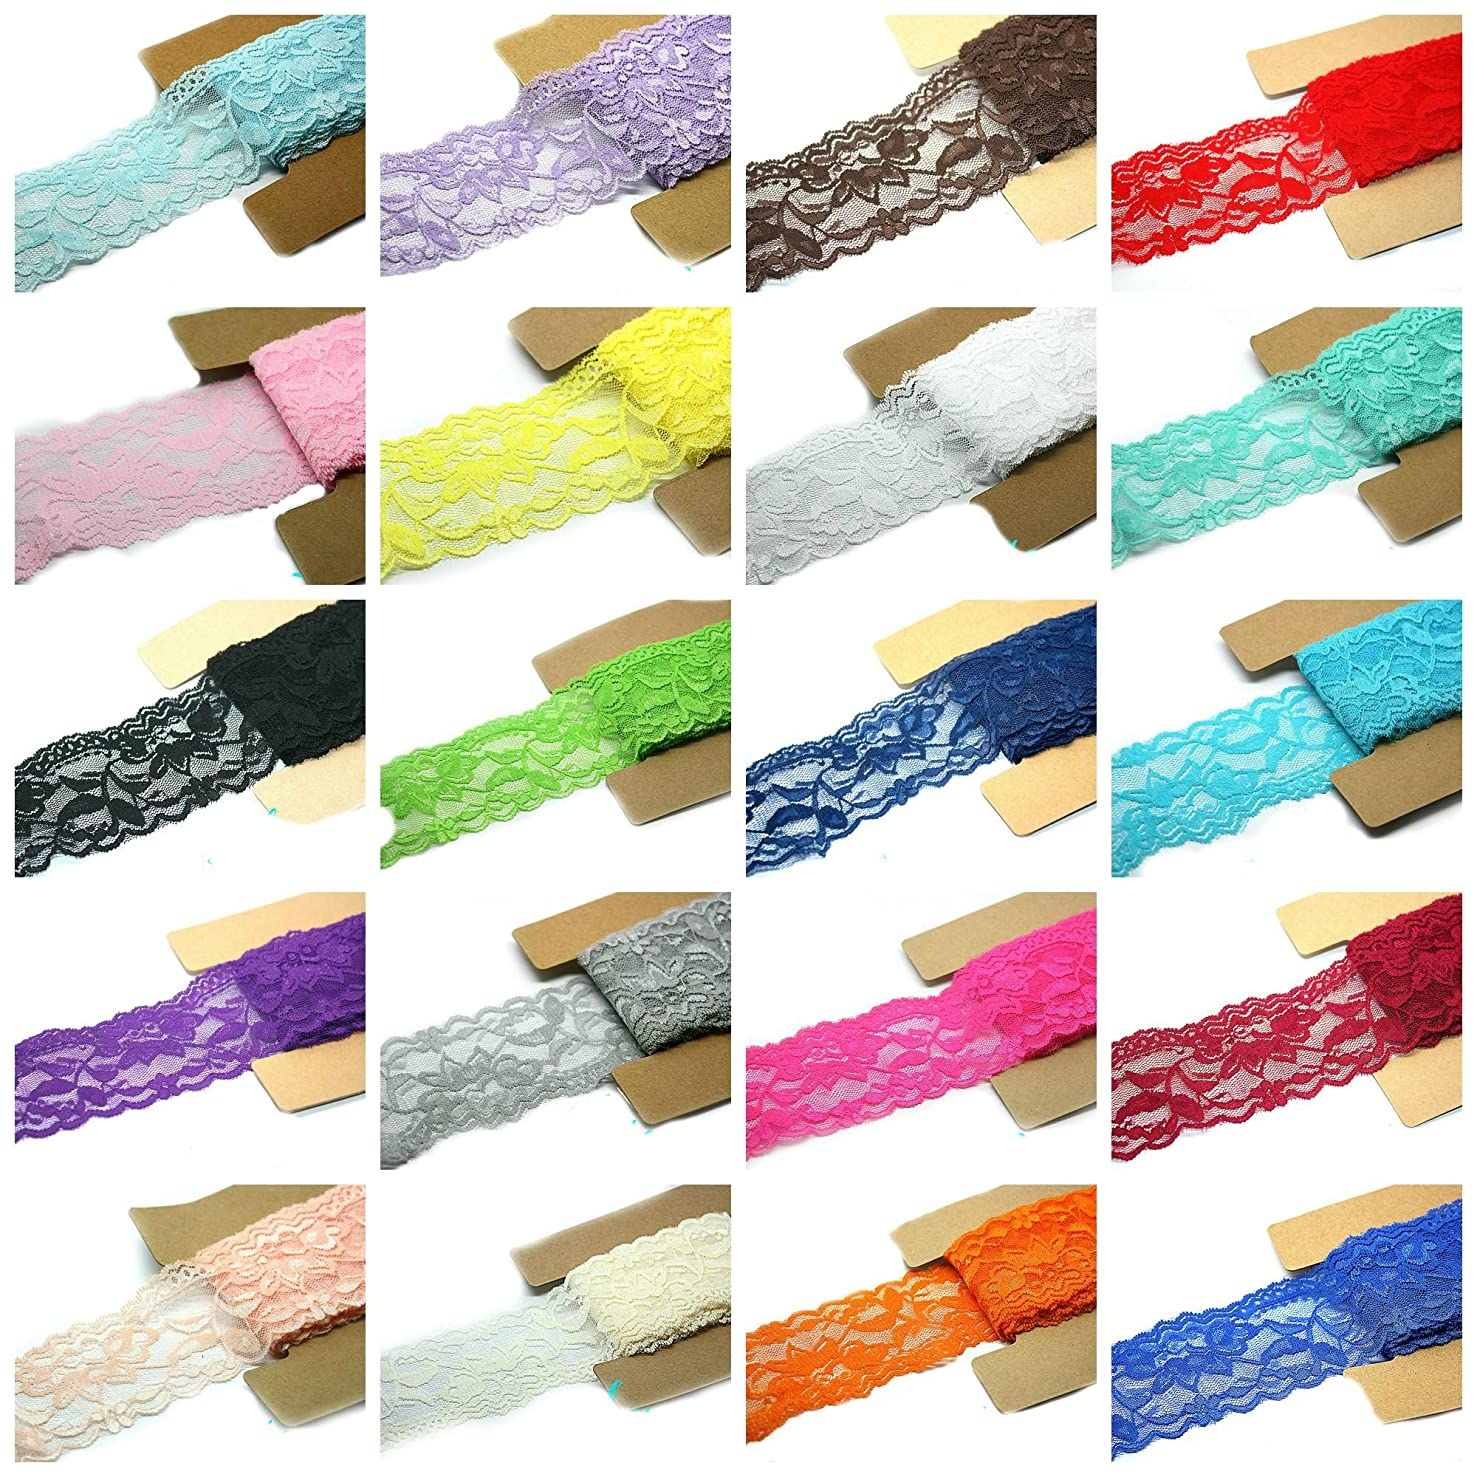 Lace Fabric Stretch Elastic JLIKA Brand 2.25 inches Wide Trim Lace for Headbands Garters Variety Pack Mix Colors Grab Bag As pictured 20 Colors 1 Yard Each